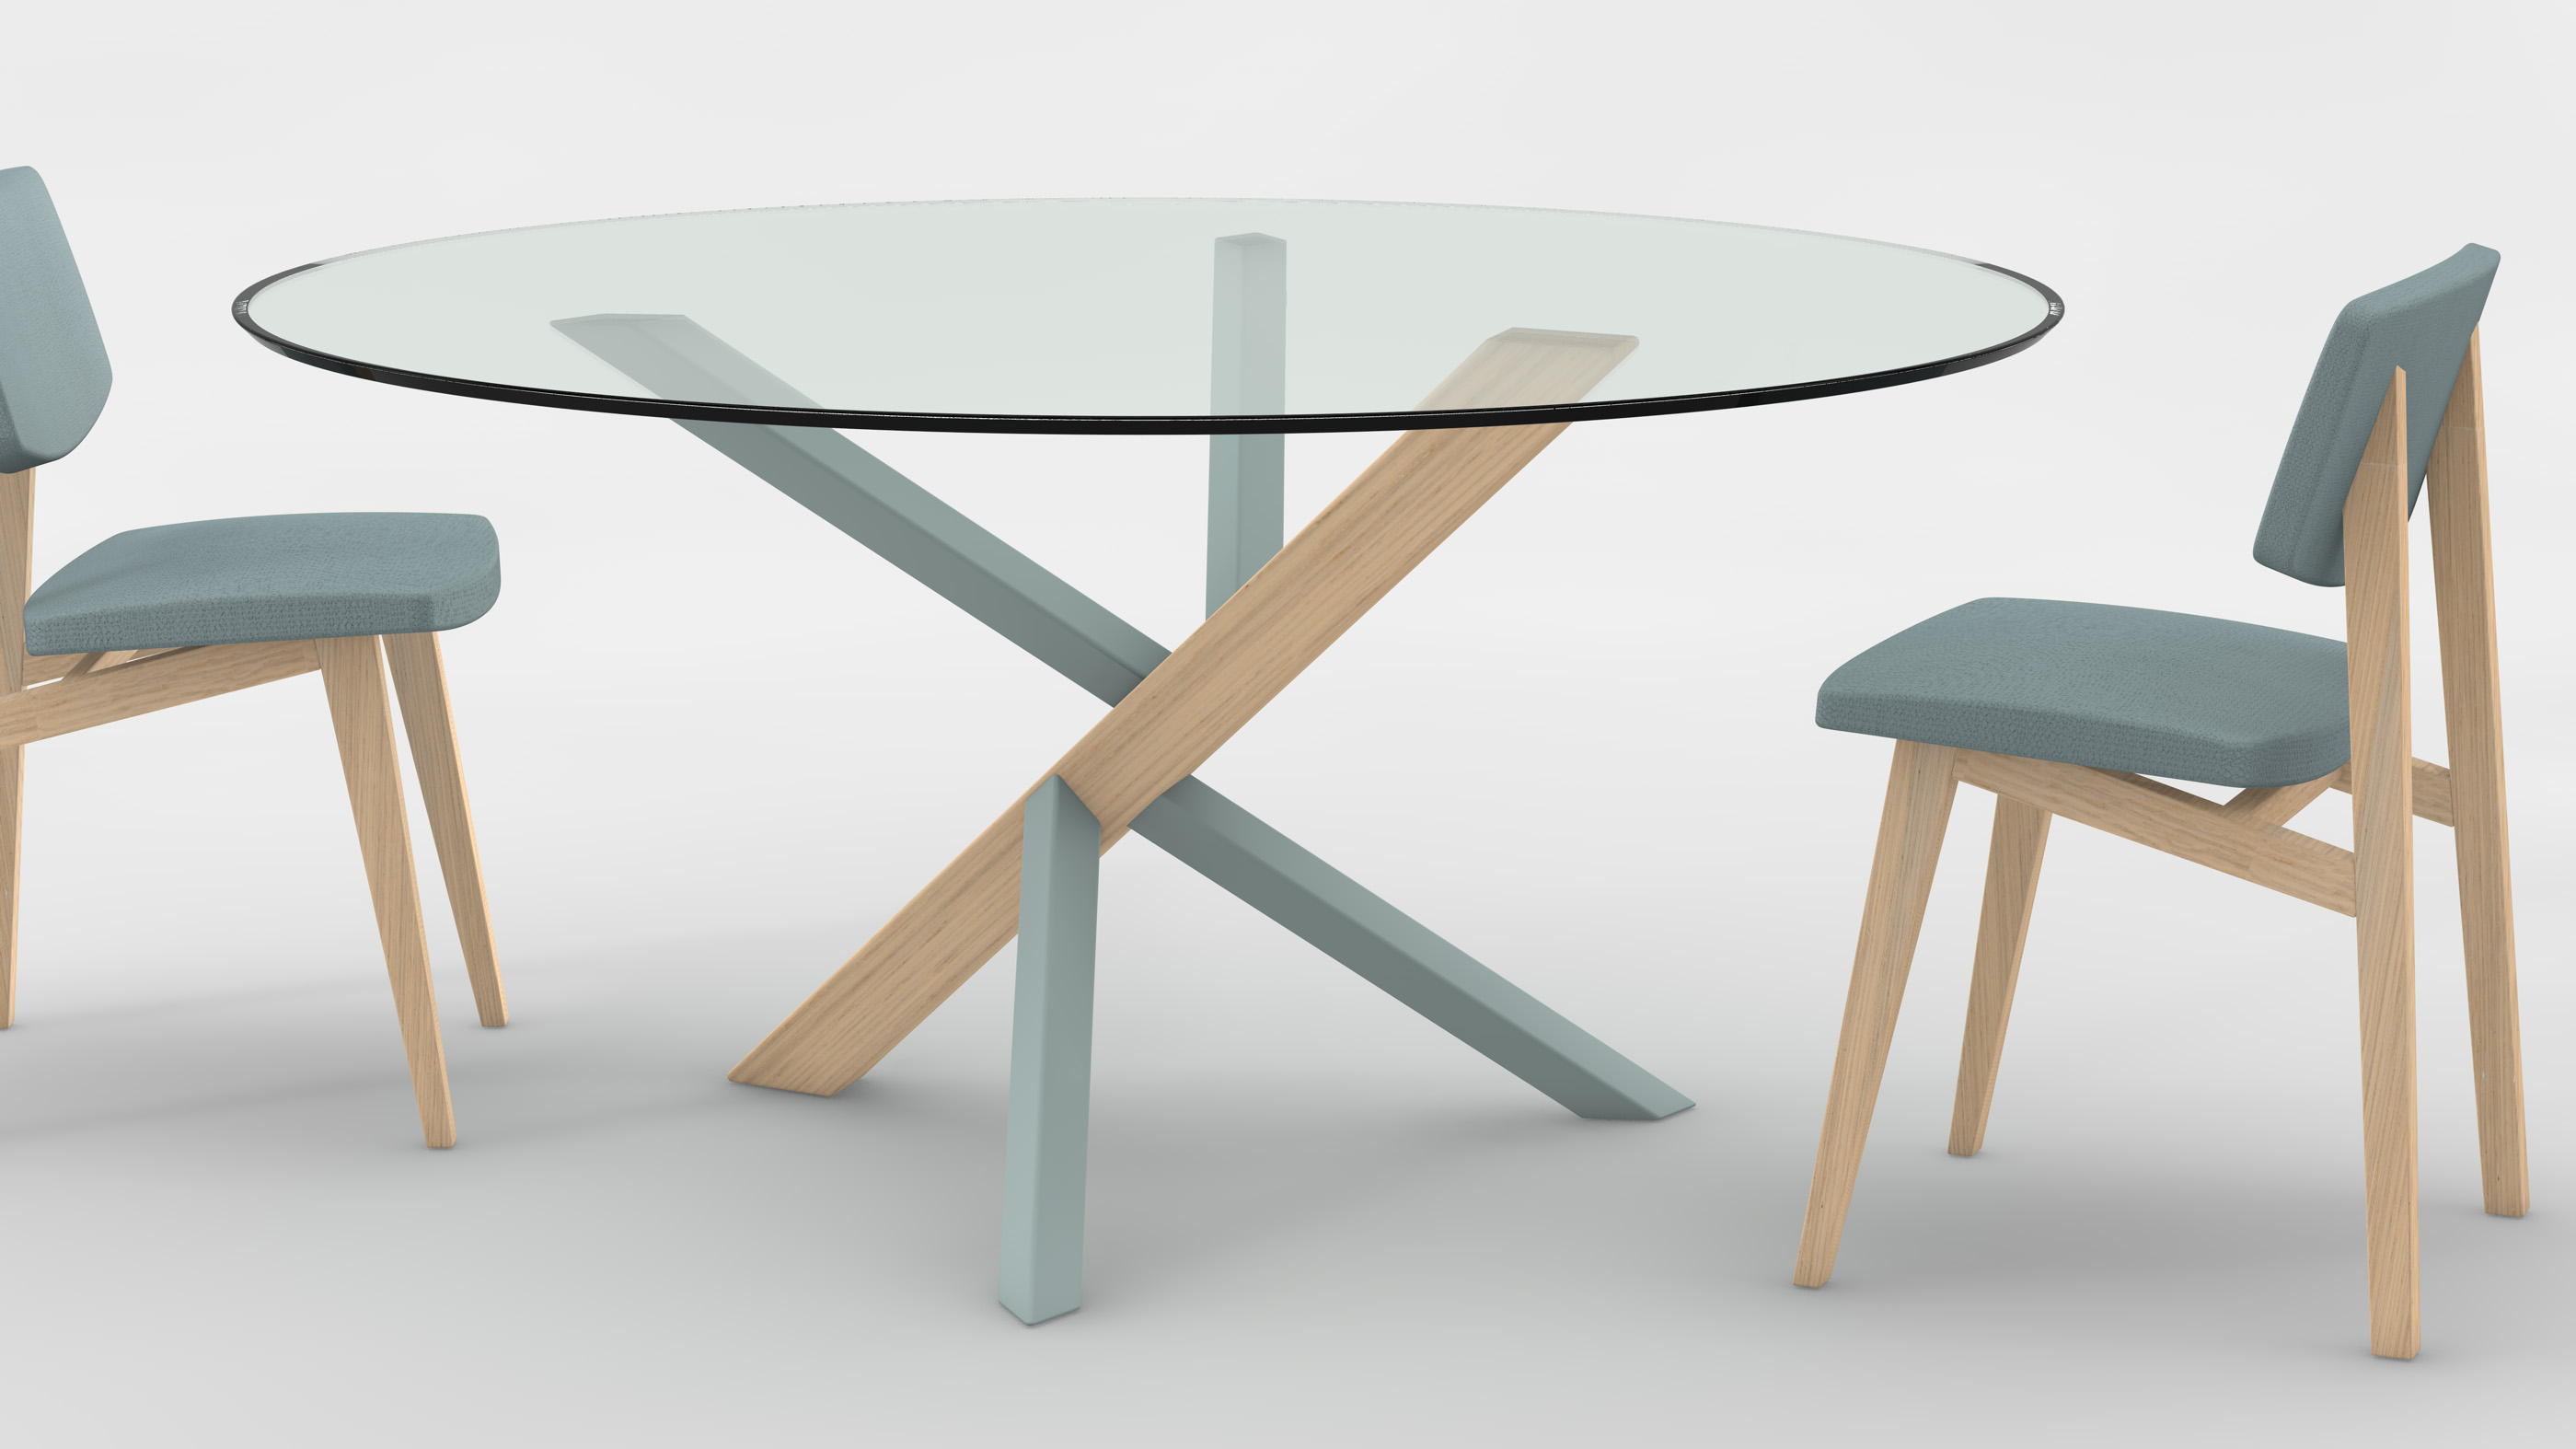 Meubles et d co la tendance des tables rondes en verre bricobistro - Customiser table en verre ...